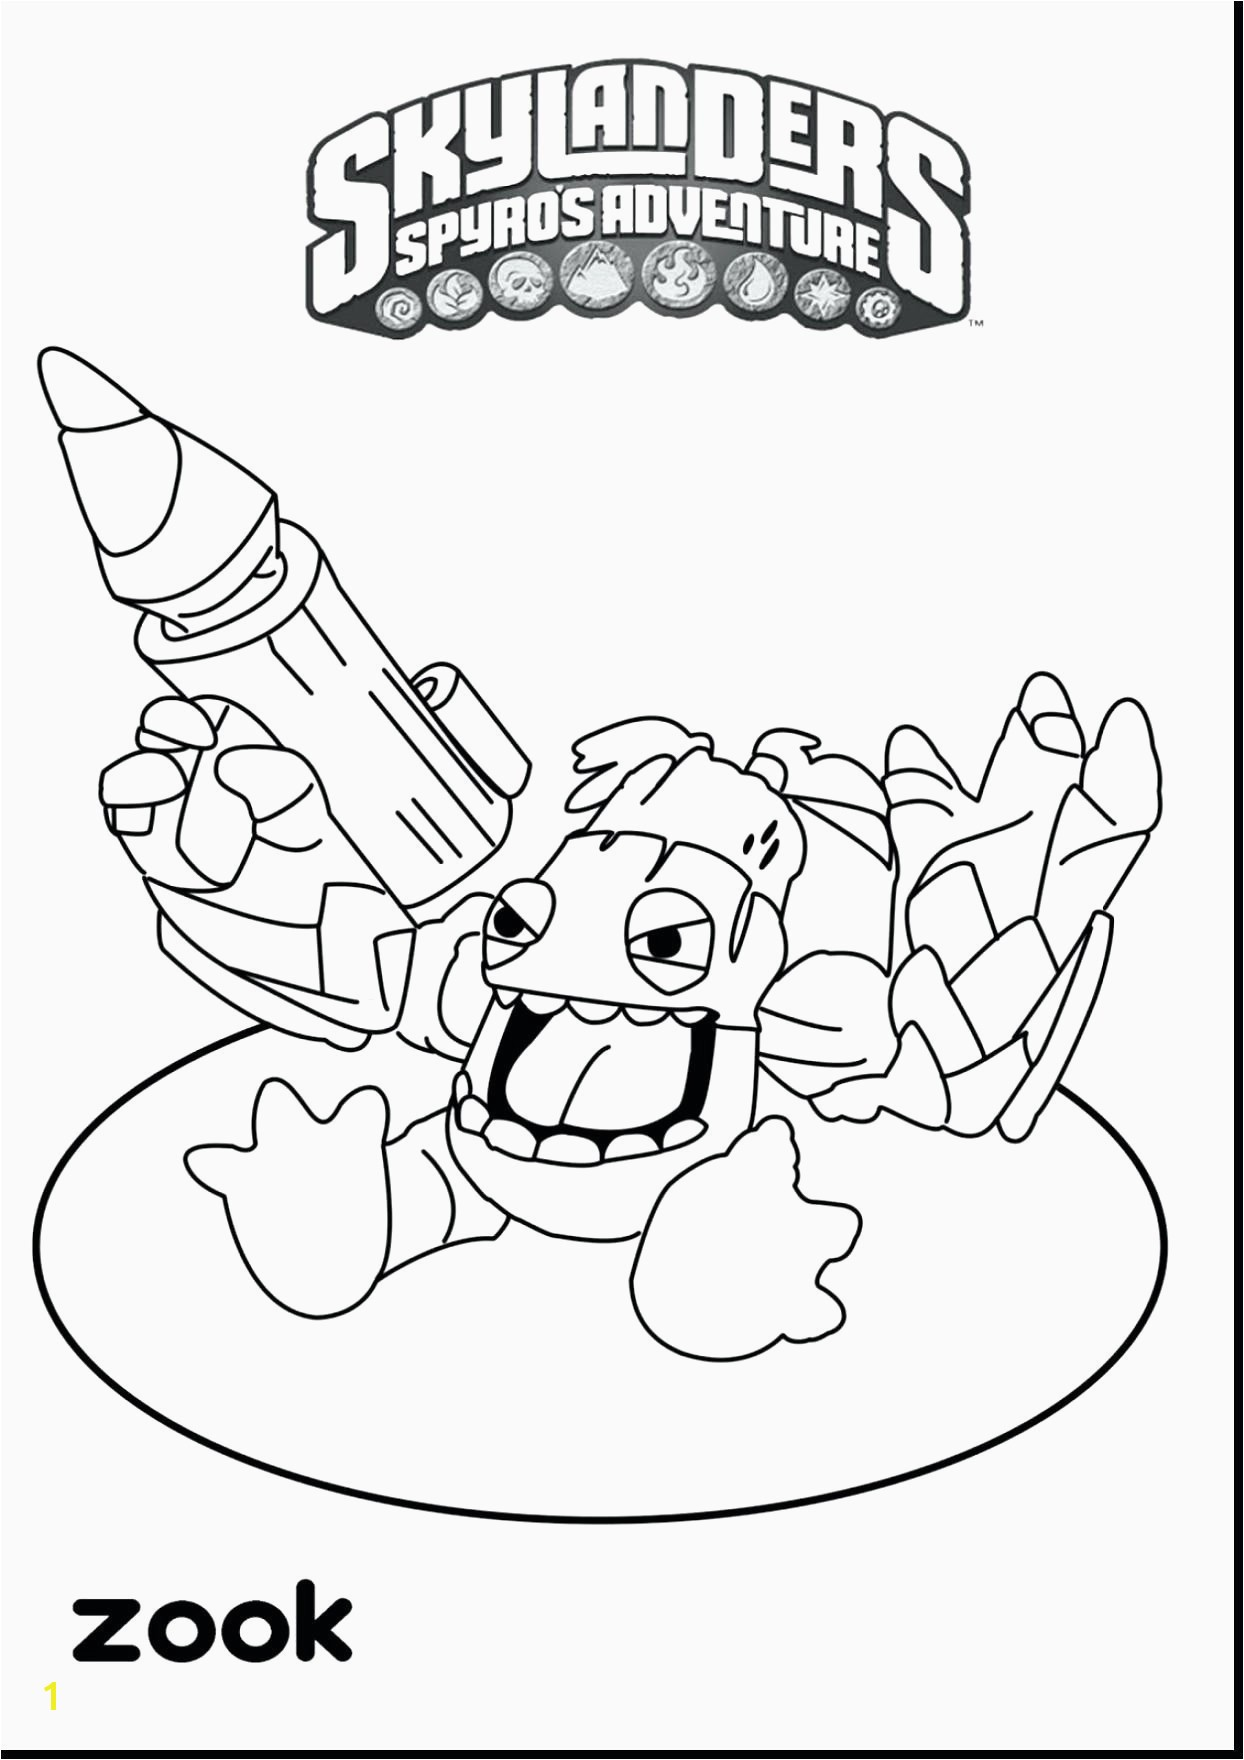 e Direction Coloring Pages New 47 Awesome Collection Drawing Pics for Kids Stock